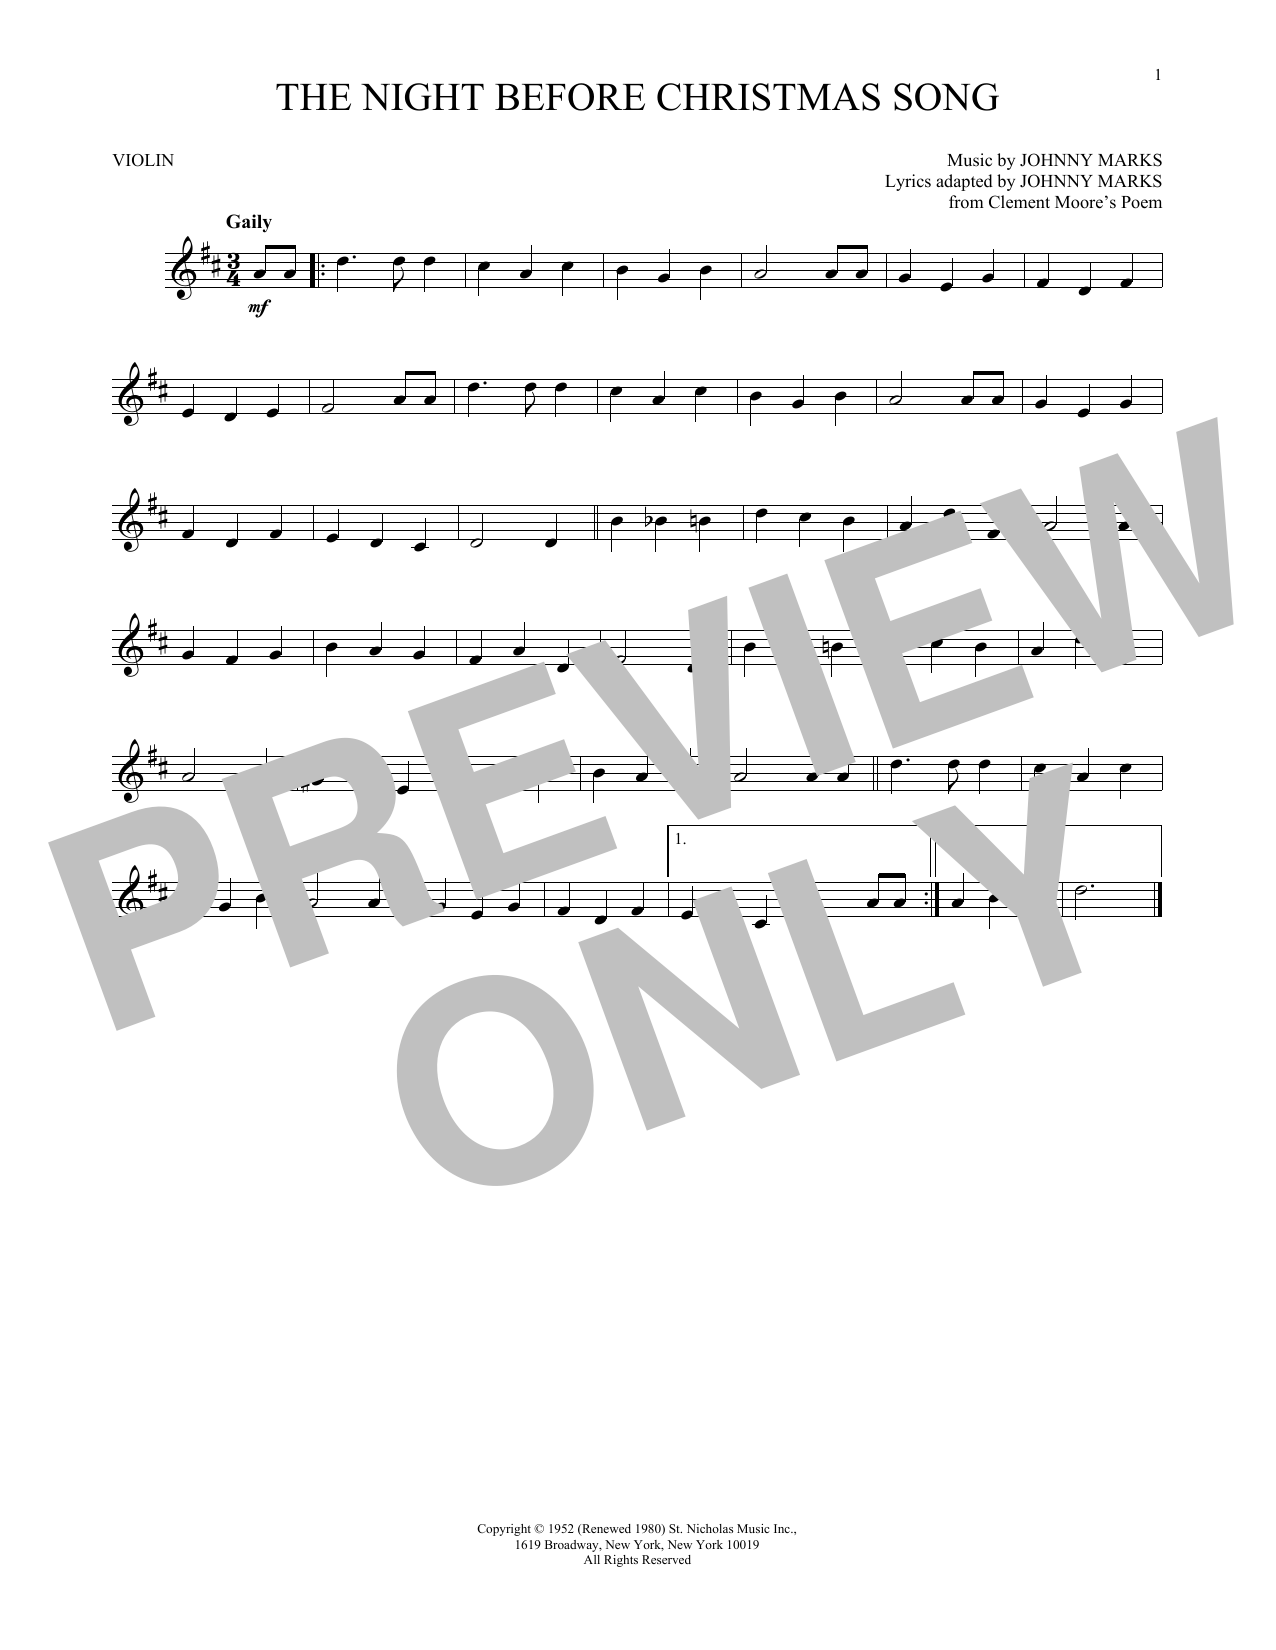 The Night Before Christmas Song (Violin Solo) - Print Sheet Music Now